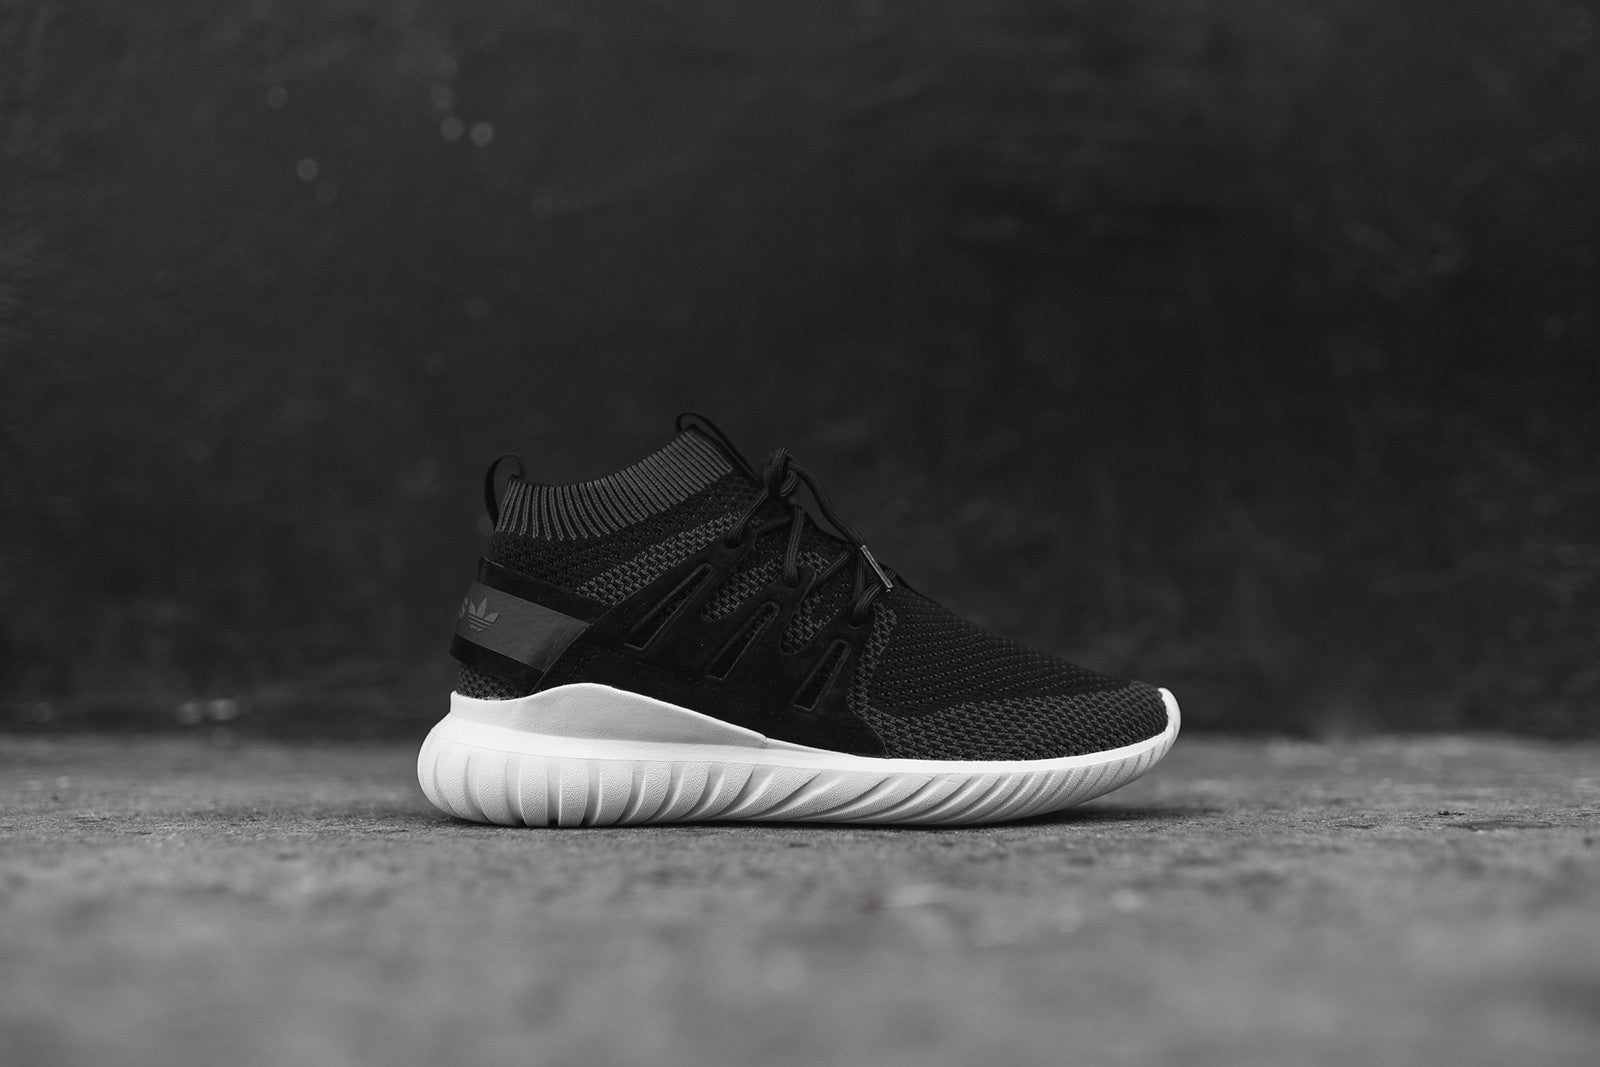 adidas Originals Tubular Nova Primeknit - Black / White